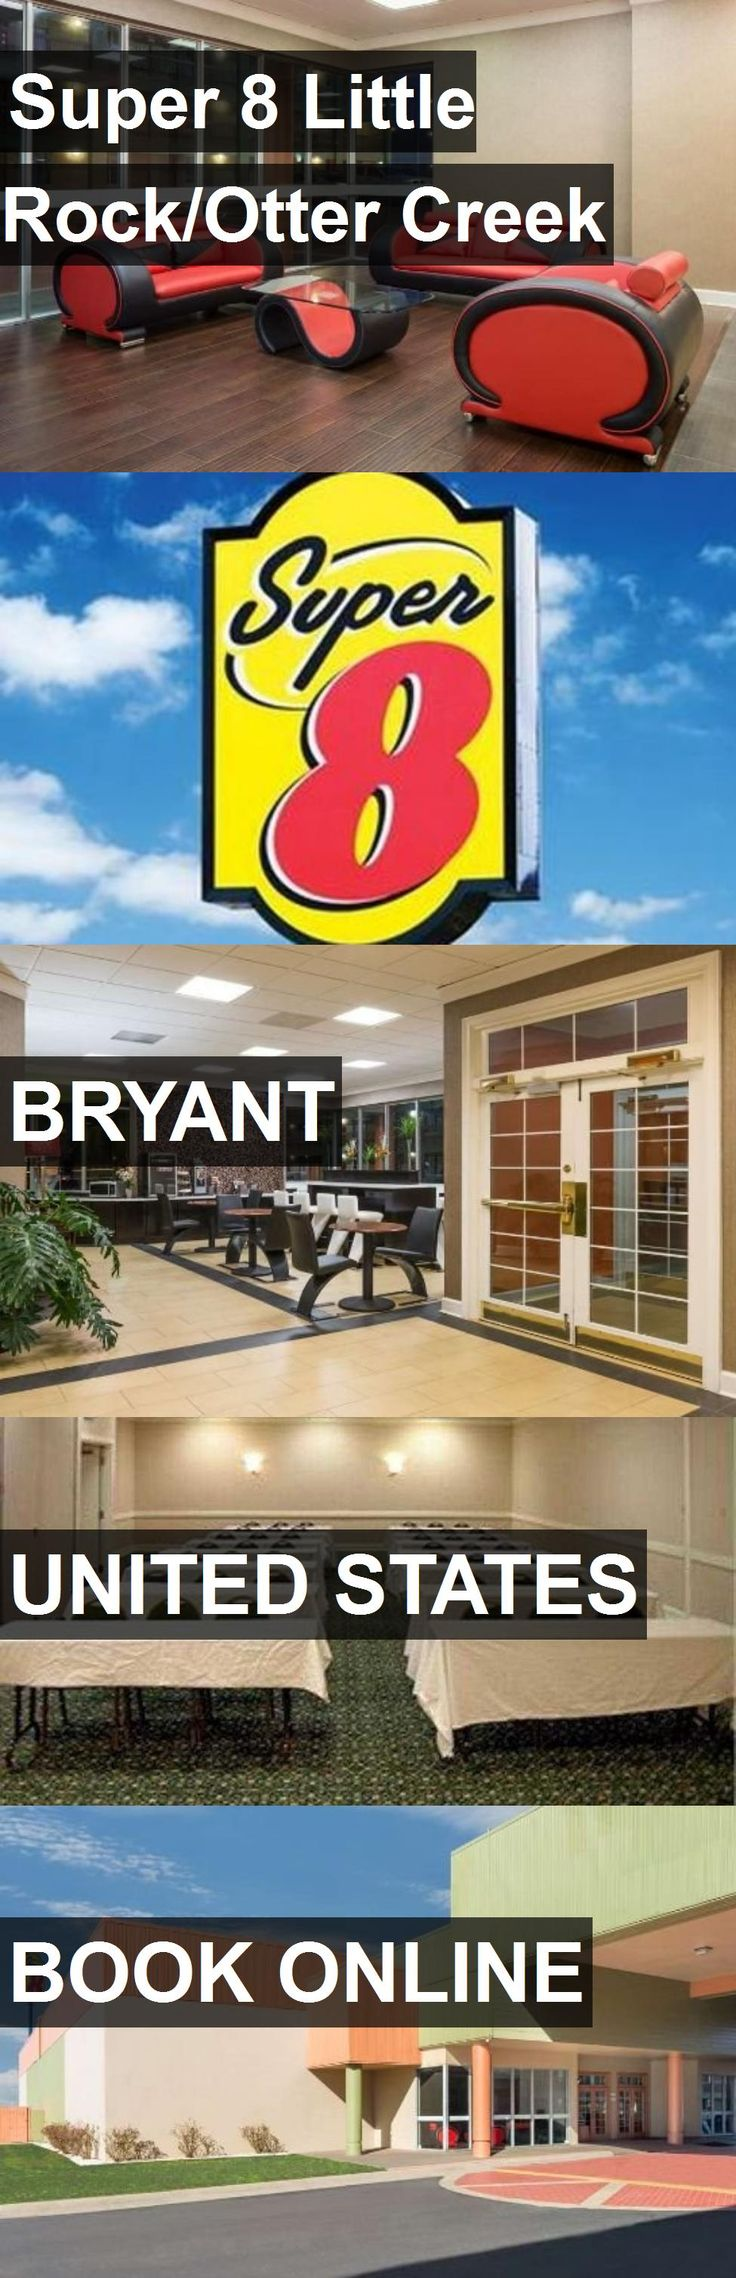 Hotel Super 8 Little Rock/Otter Creek in Bryant, United States. For more information, photos, reviews and best prices please follow the link. #UnitedStates #Bryant #travel #vacation #hotel